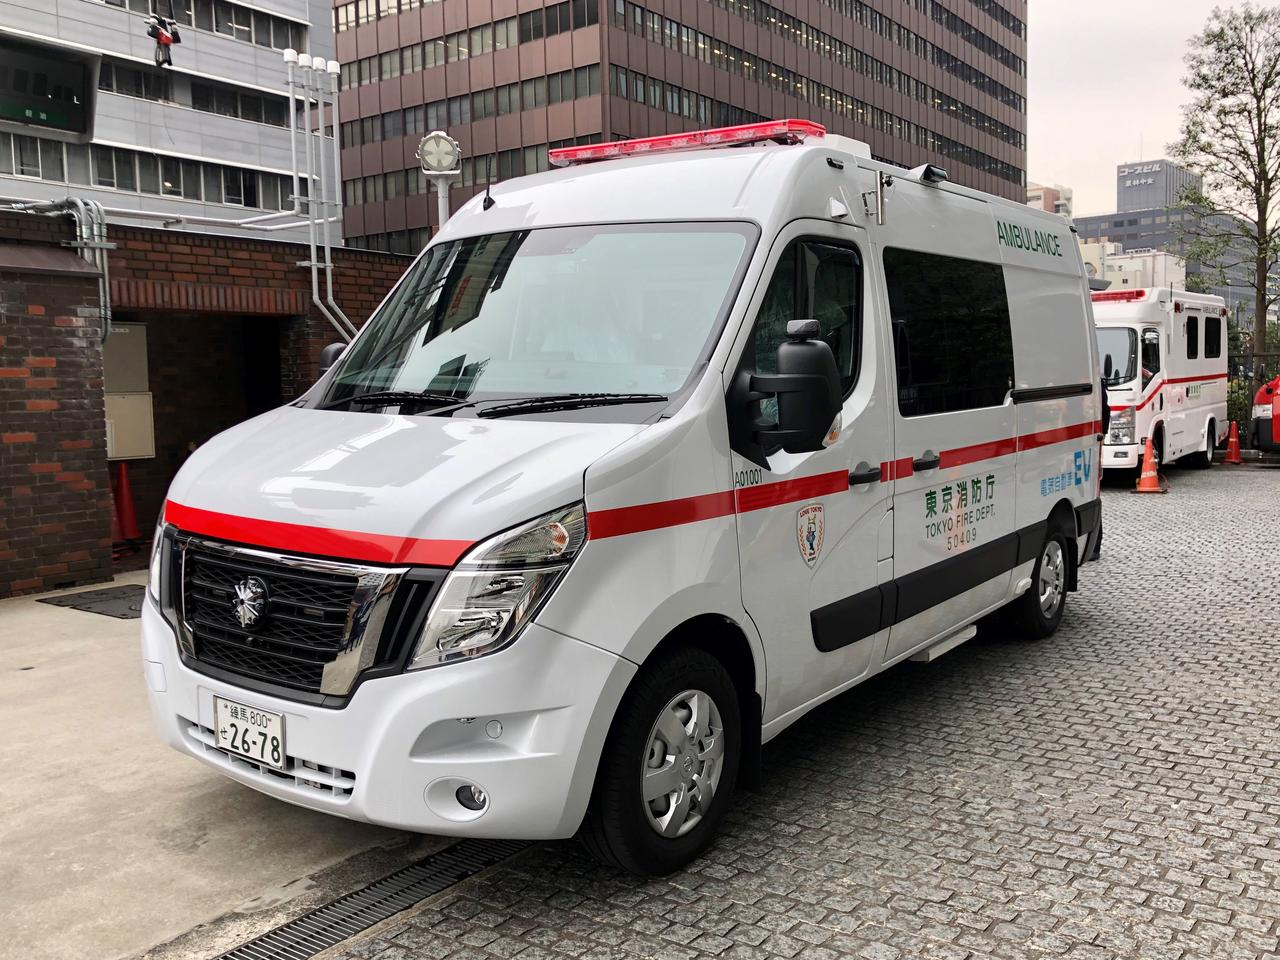 Japan's first electric ambulance is based on Nissan's NV400 van